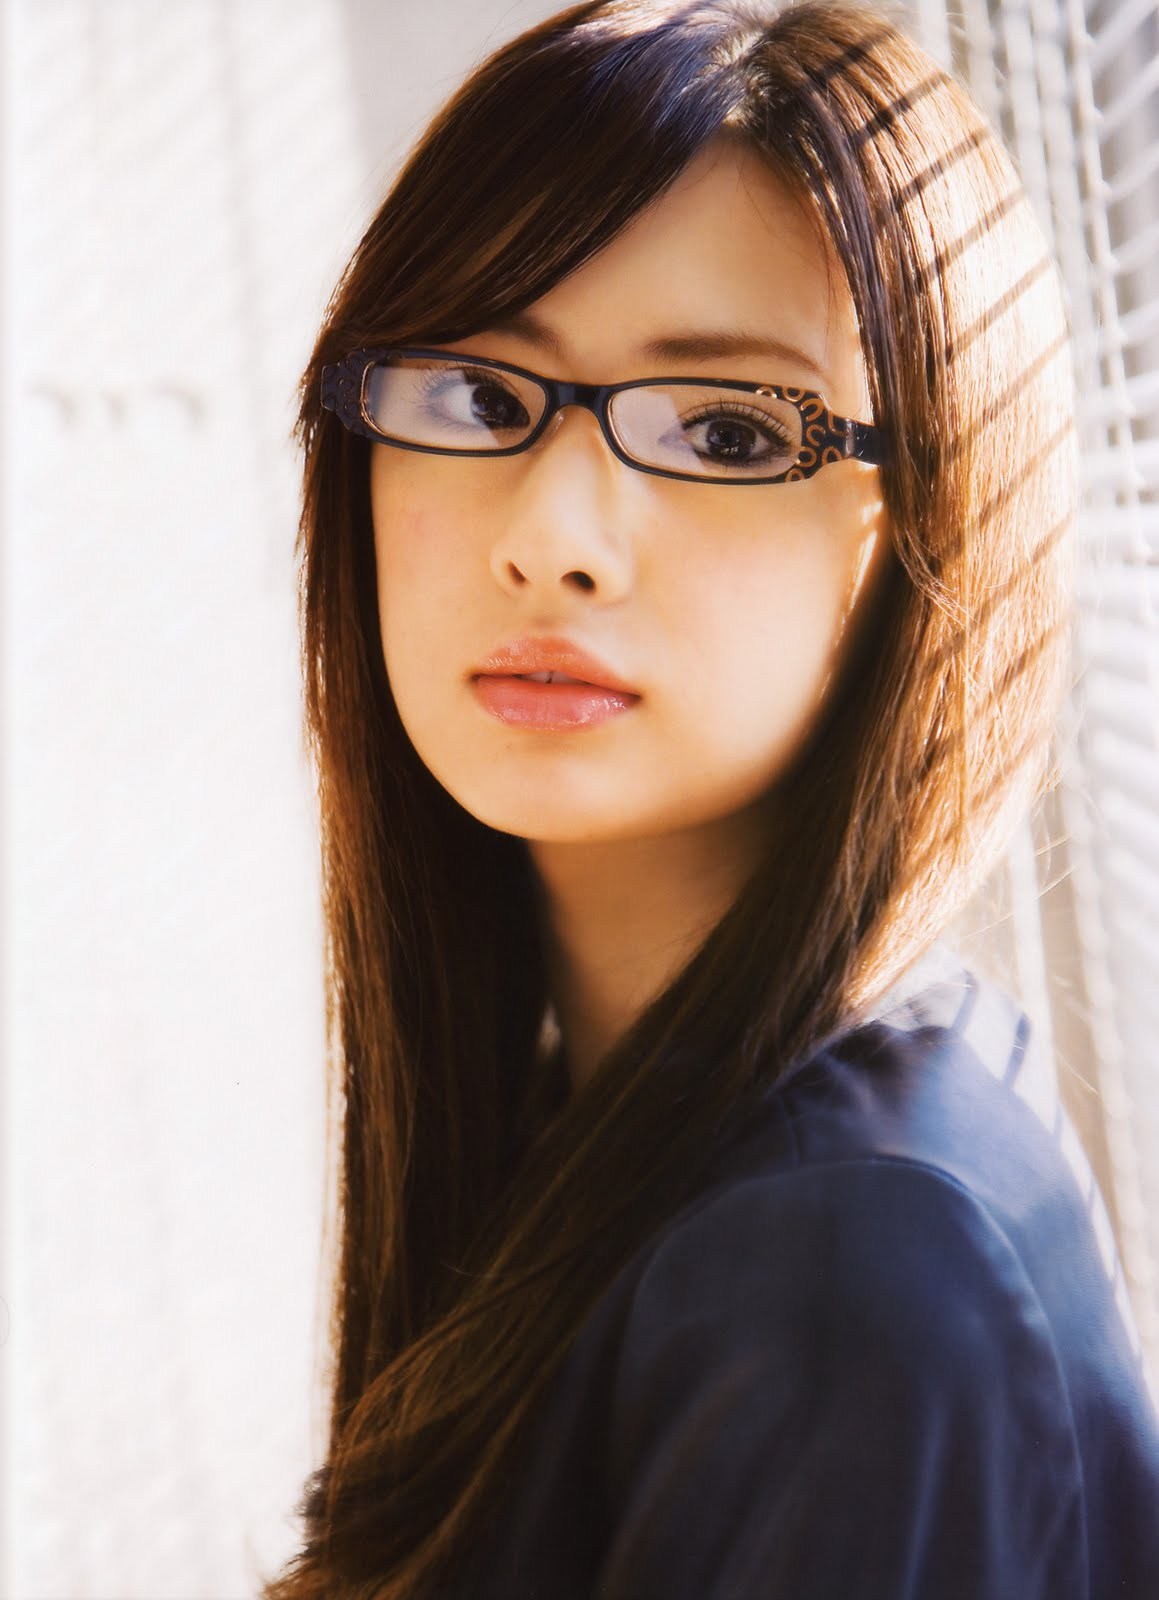 World's Most Beautiful Women: Keiko Kitagawa